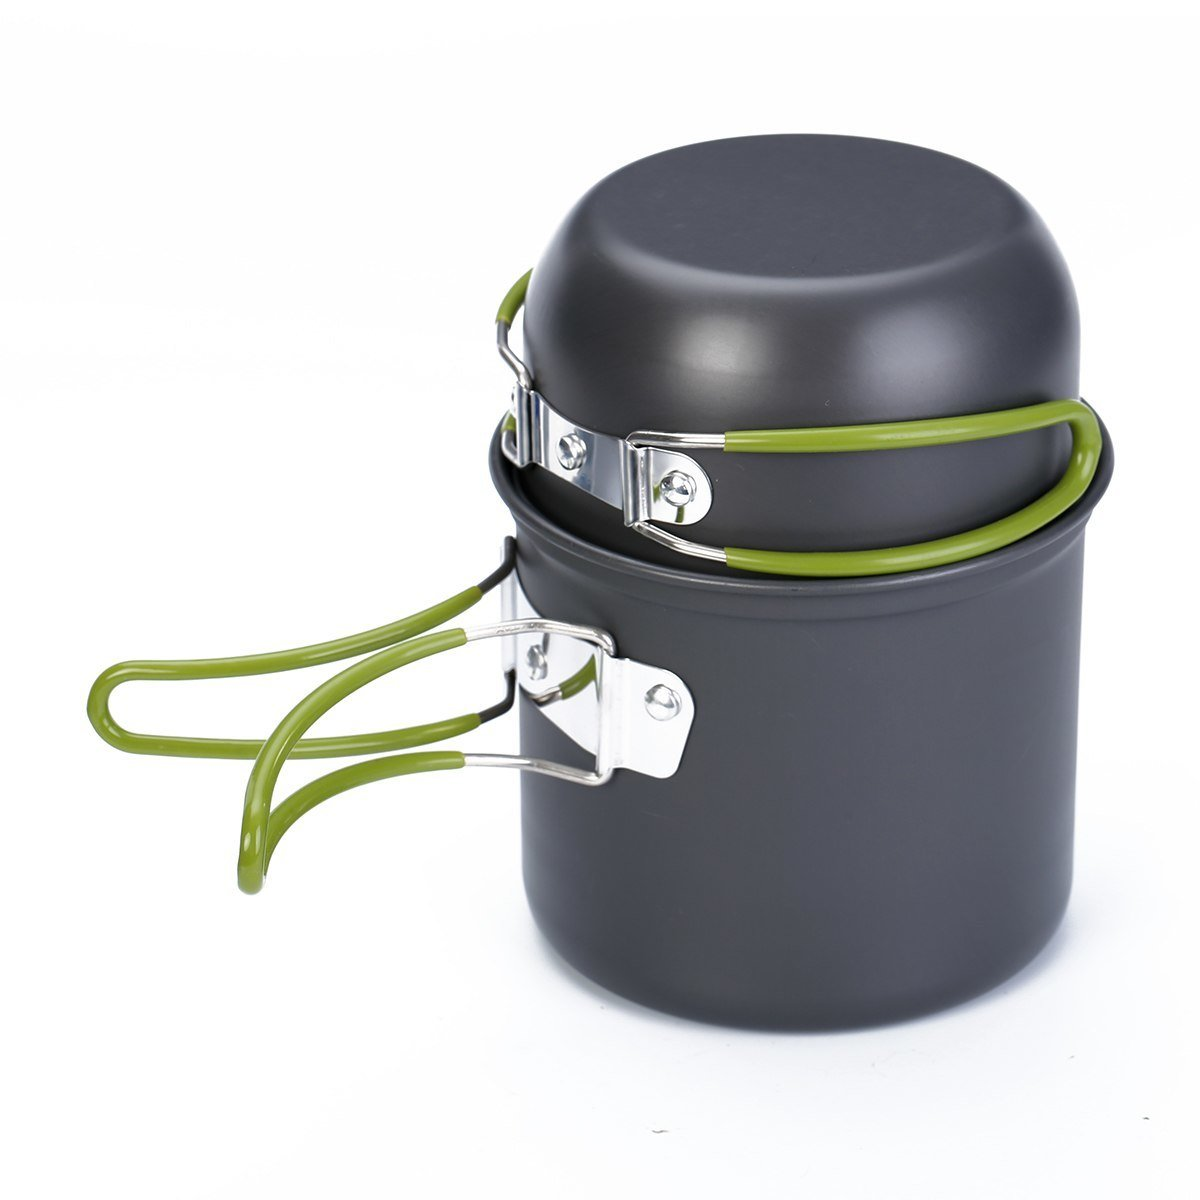 CKO 1L Pot/Bowl Combo Set - ideal for backpackers